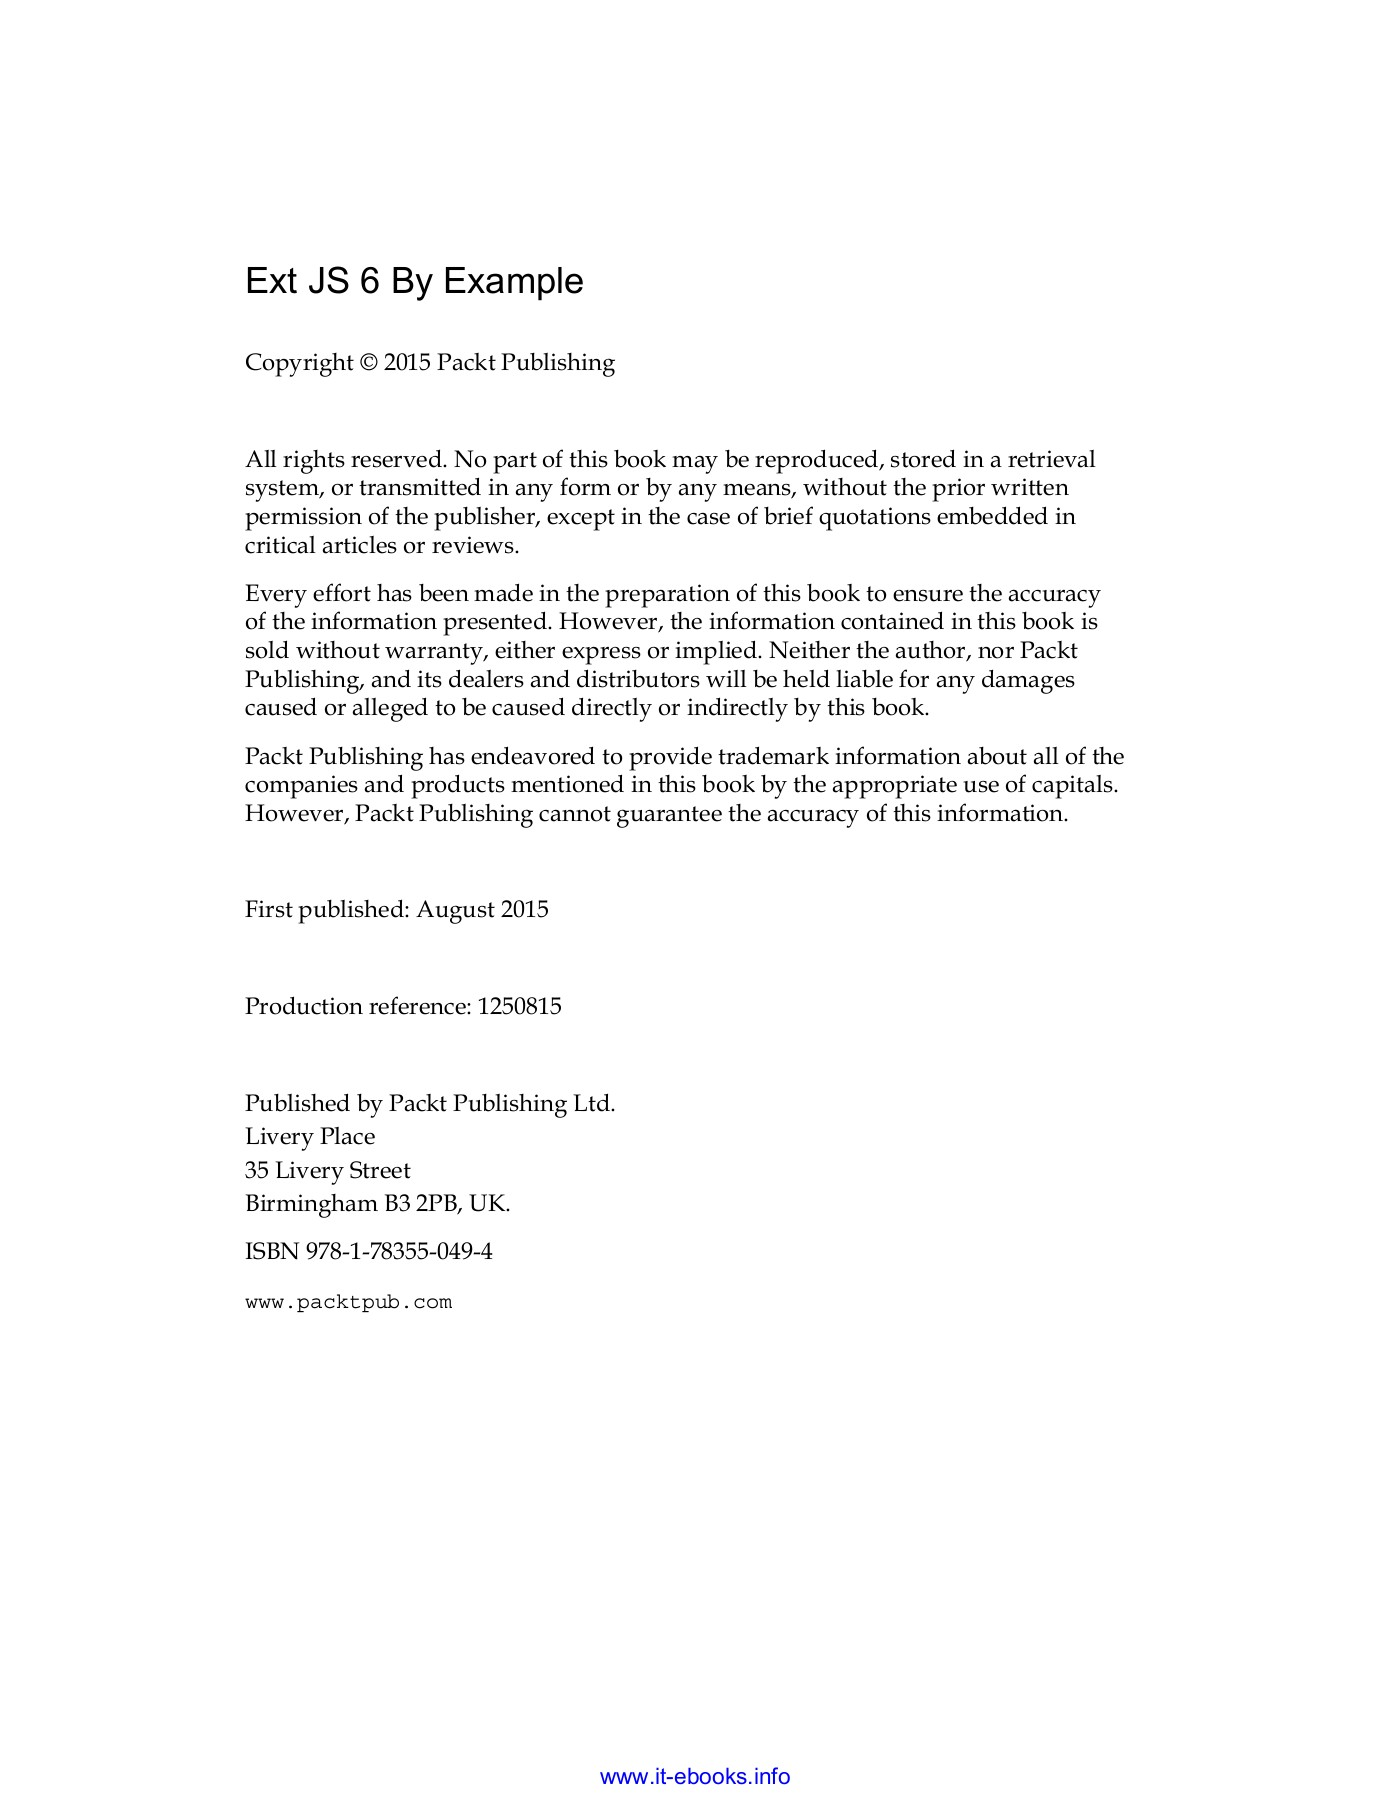 Ext JS 6 By Example Pages 51 - 100 - Text Version | AnyFlip